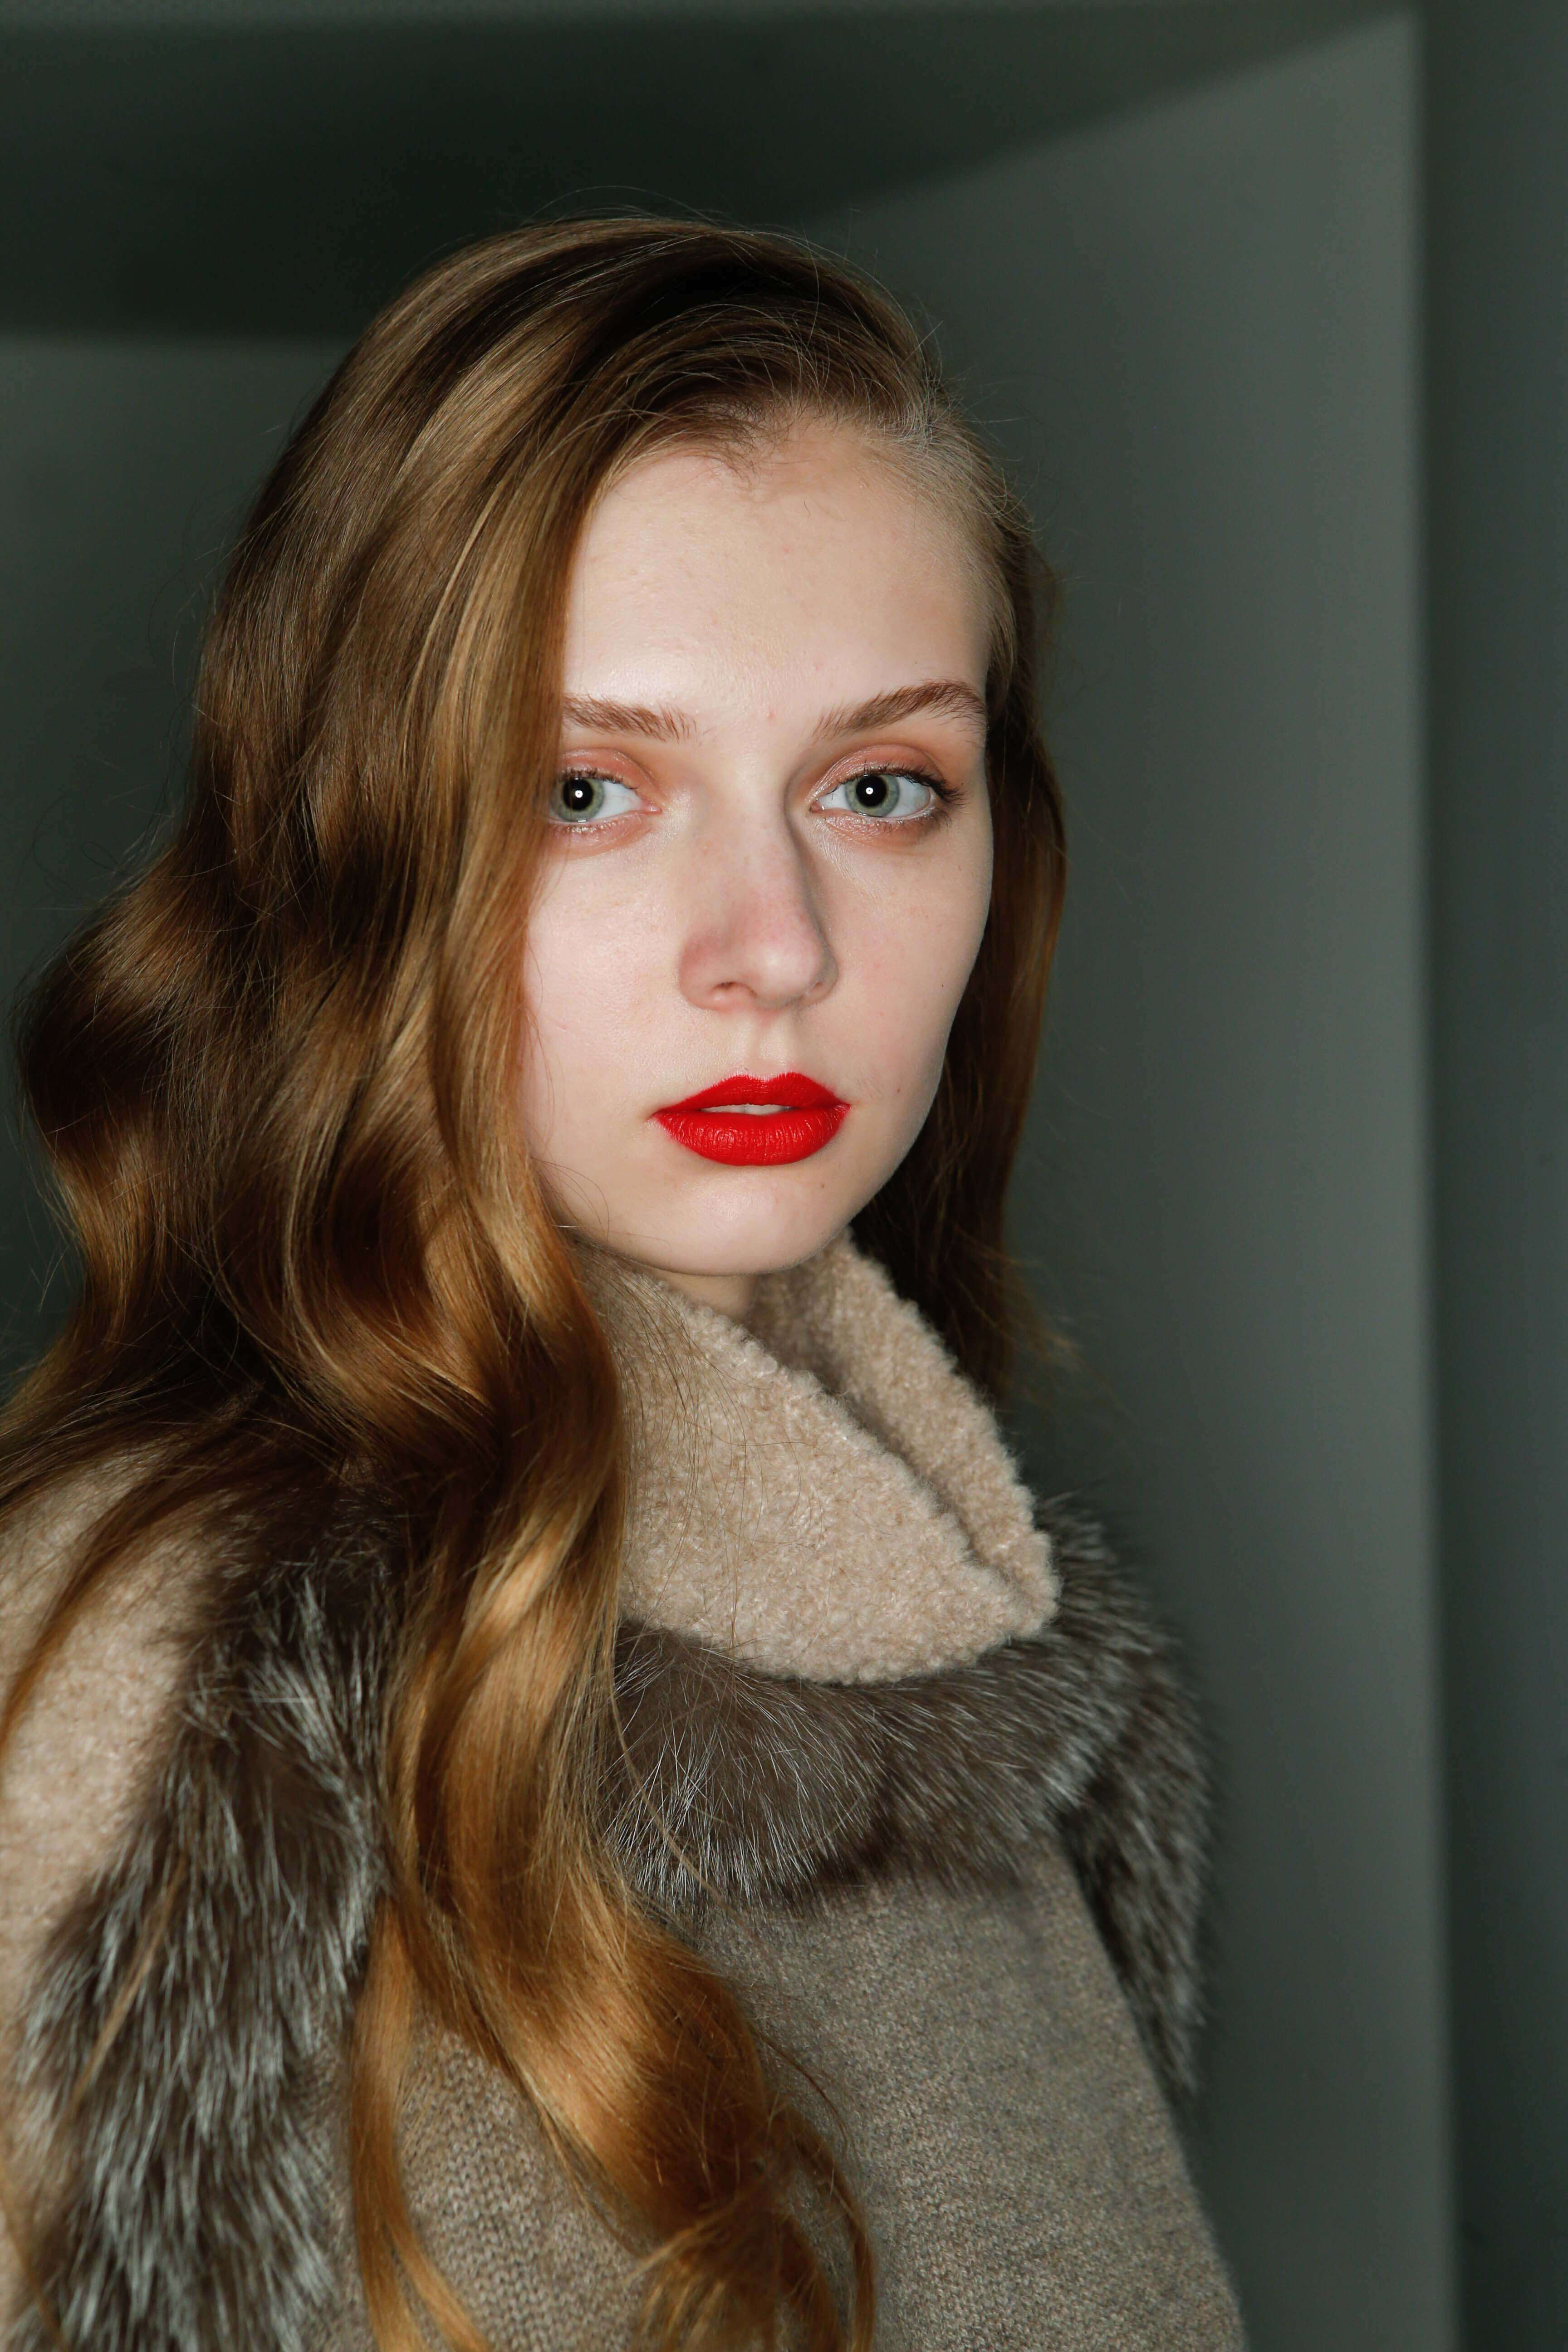 How to use a curling wand: Redhead model with sleek wavy hair, wearing red lipstick